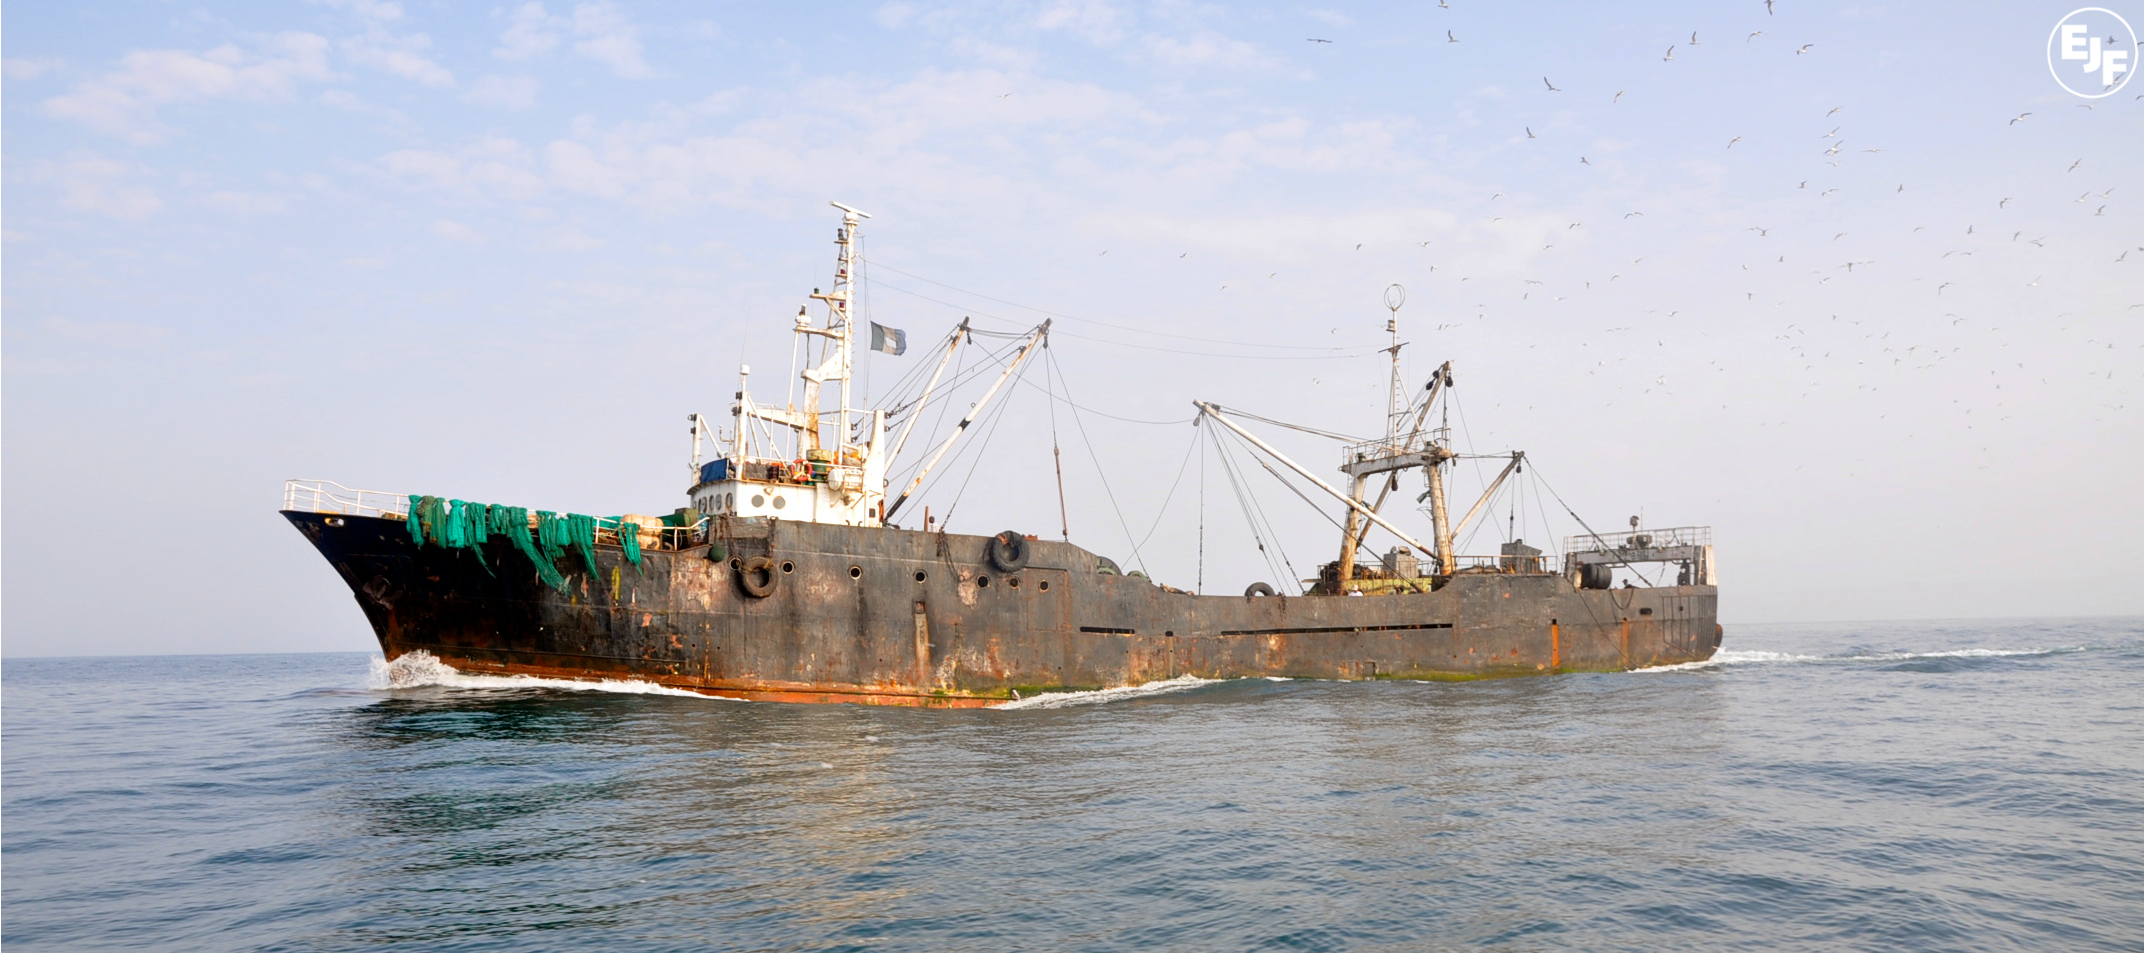 Pirate fishing vessel seized in Liberia